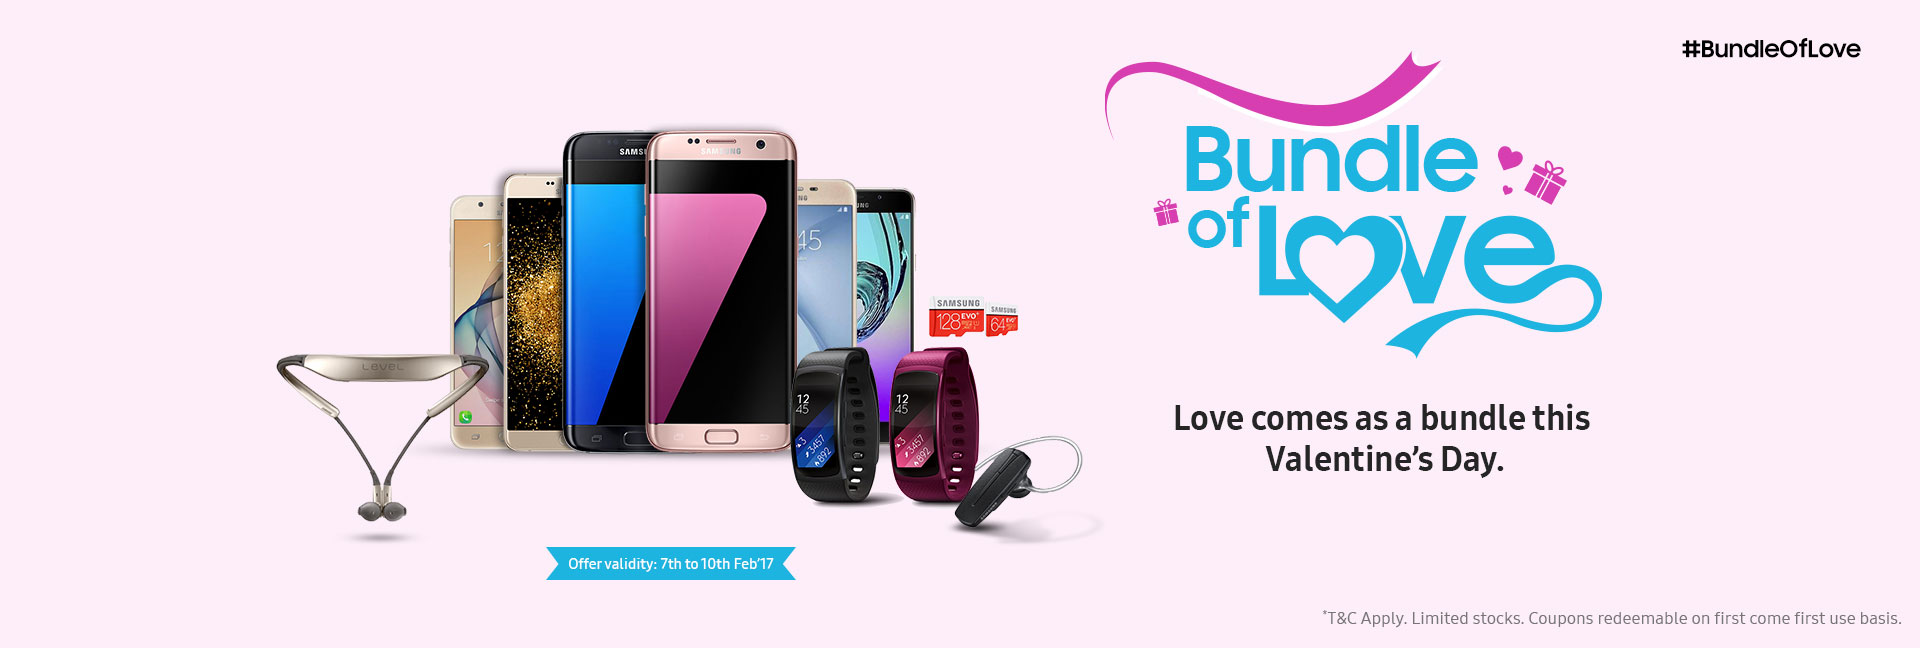 Samsung India Announces Bundle Of Love Offer To Celebrate